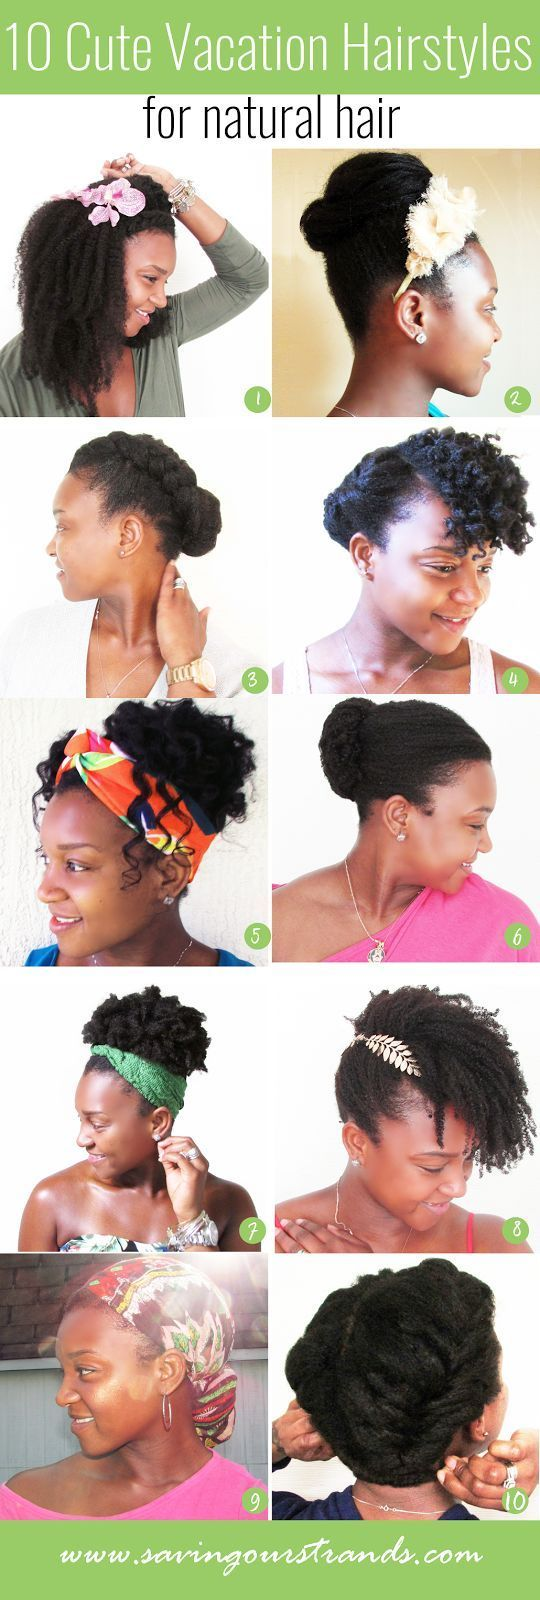 10 Cute Vacation Hairstyles For Natural Hair on www.savingourstrands.com in 2020 | Natural hair ...